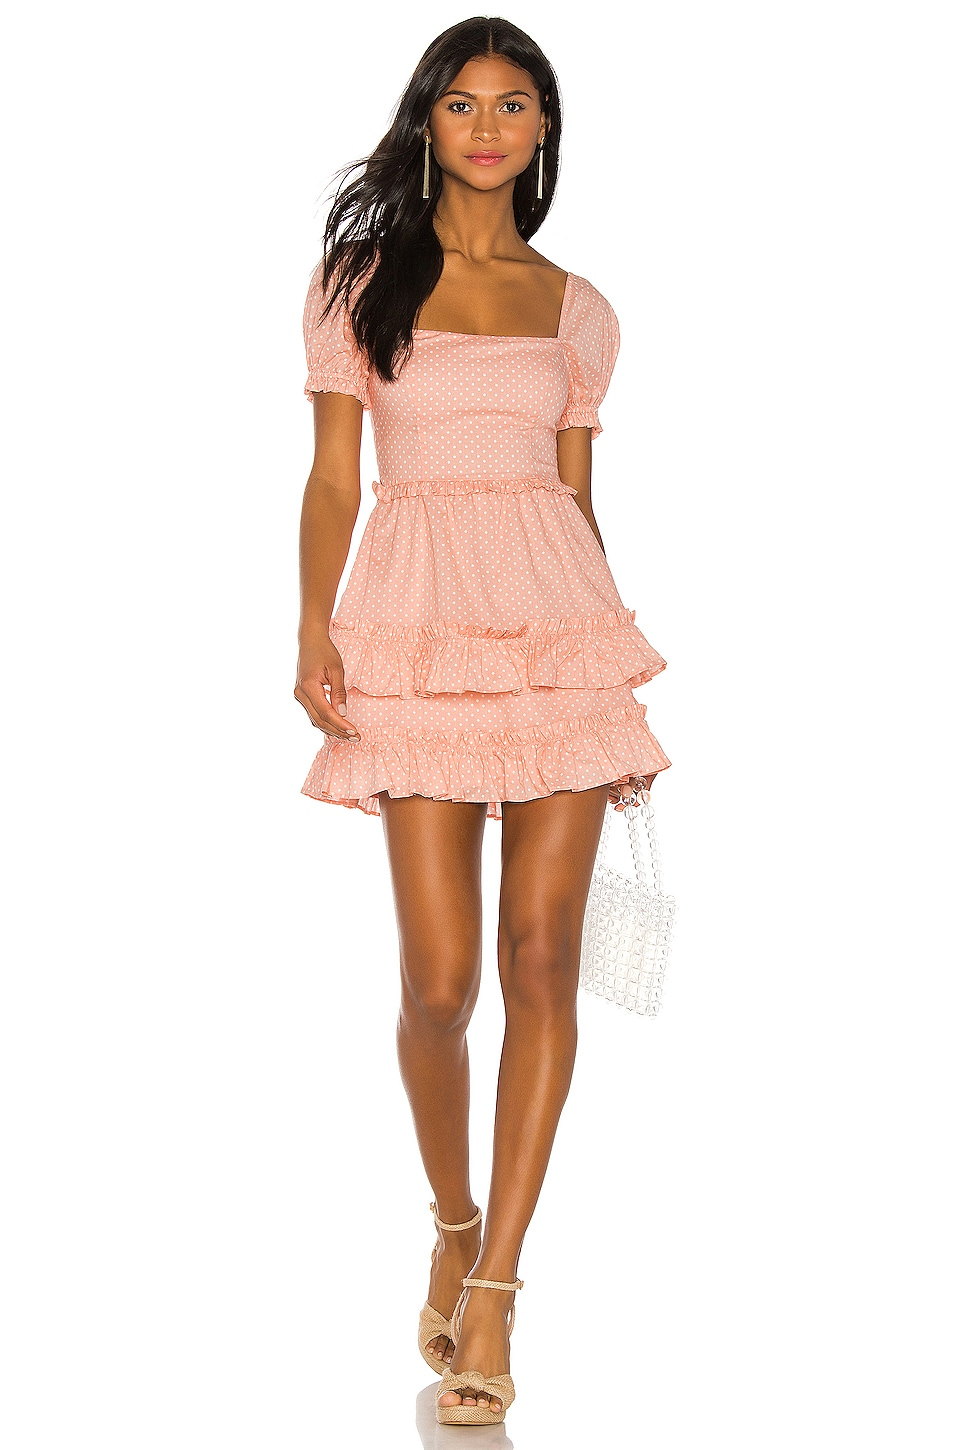 MAJORELLE Vendetti Mini Dress in Pink Dot